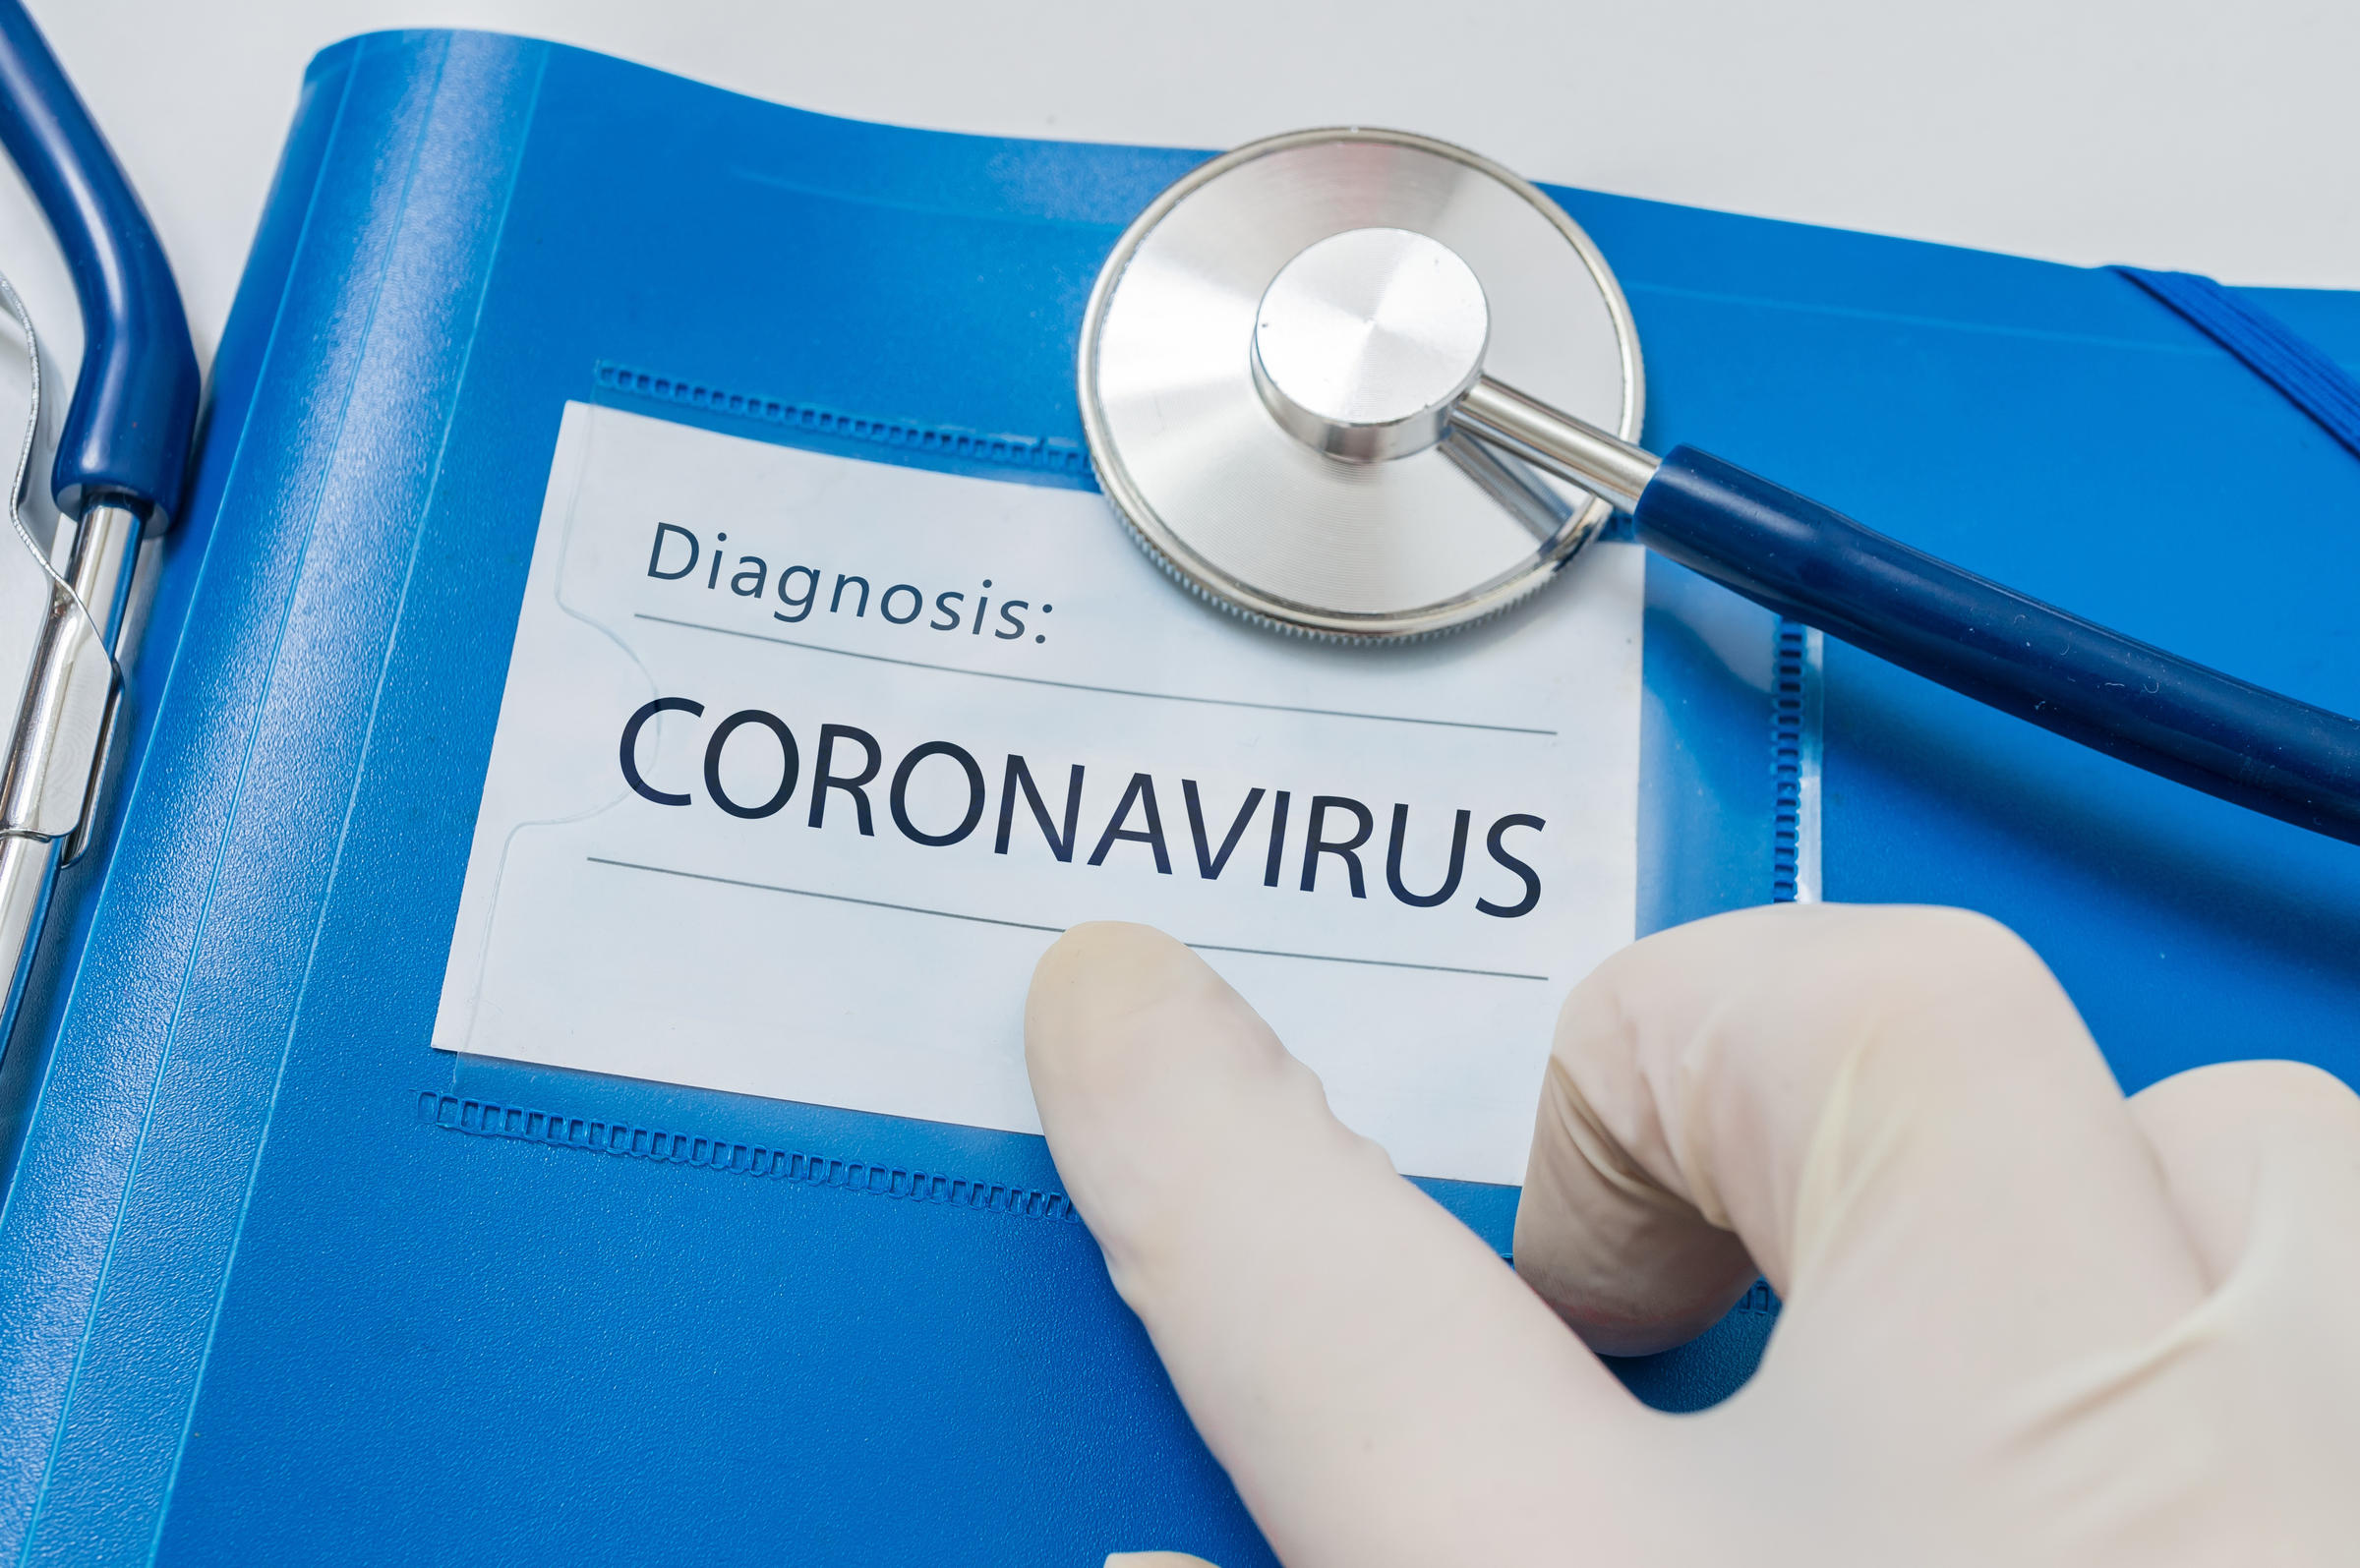 Coronavirus: Florida officials identify 3rd COVID-19 case, 2nd in Hillsborough